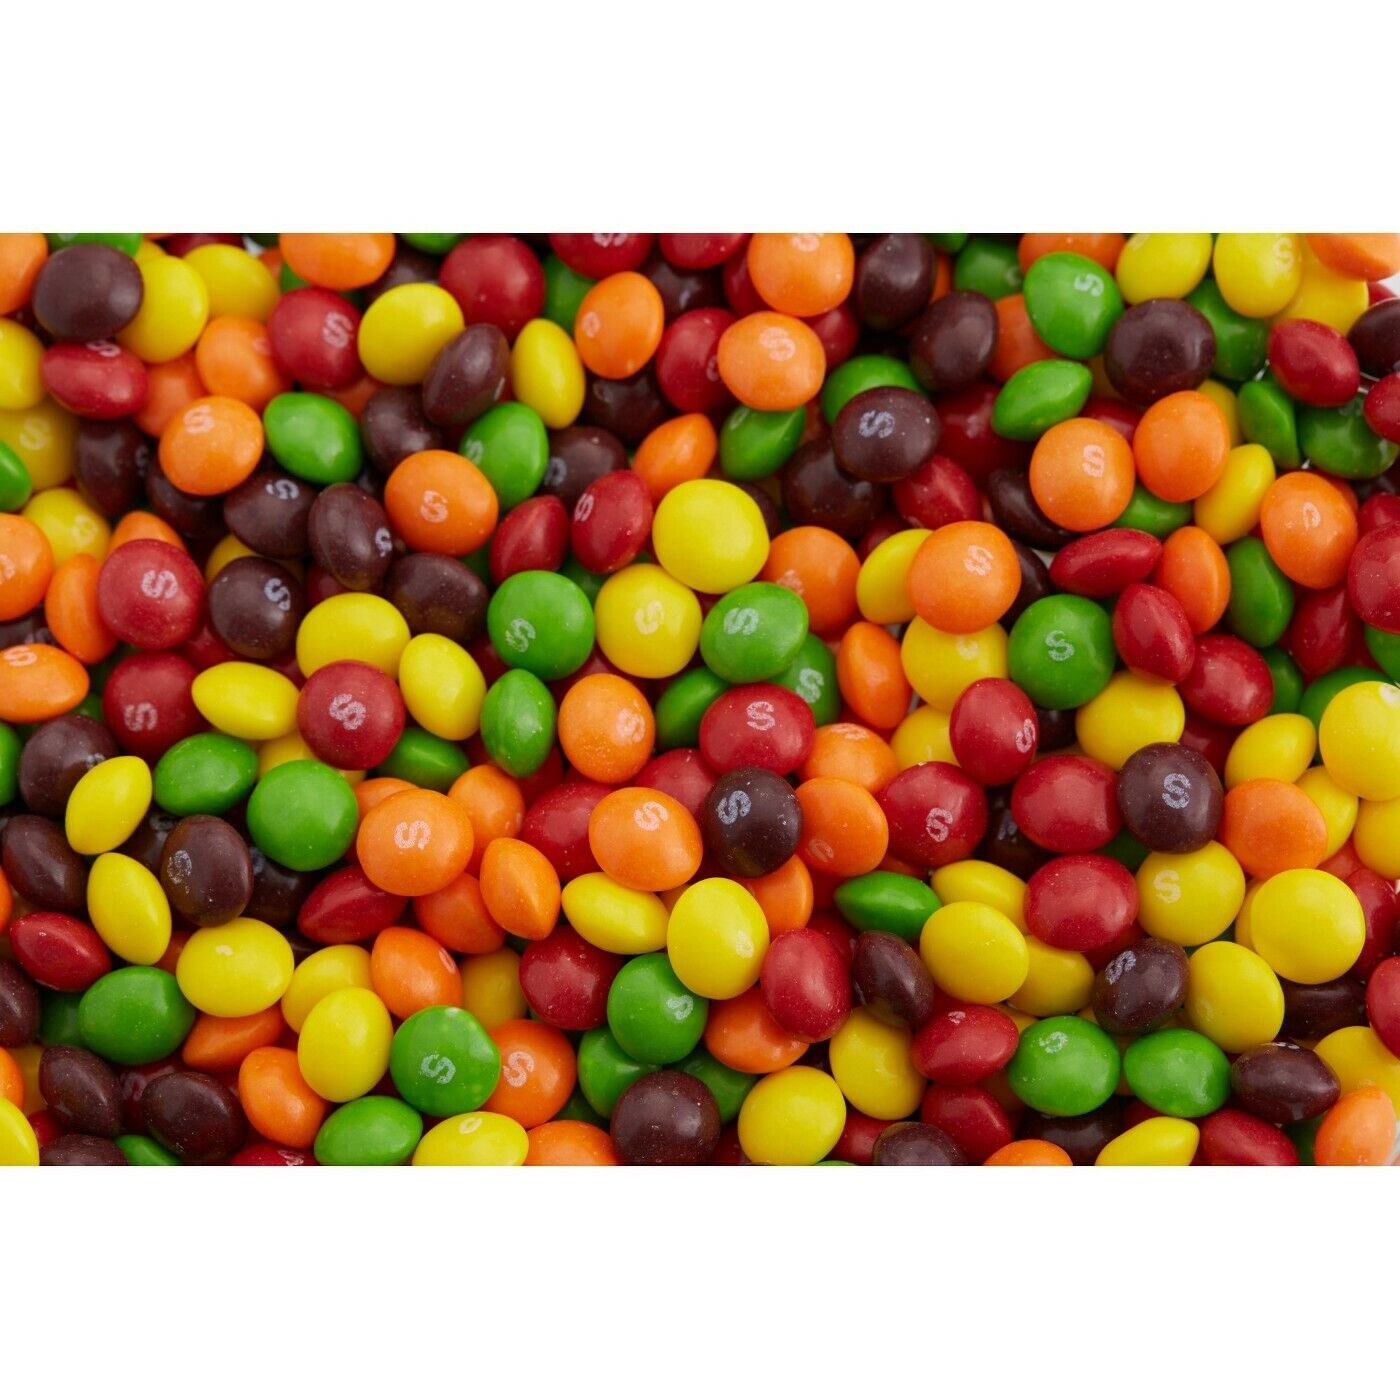 Skittles Original Bite Size Candies, Theater Box, 3.5oz